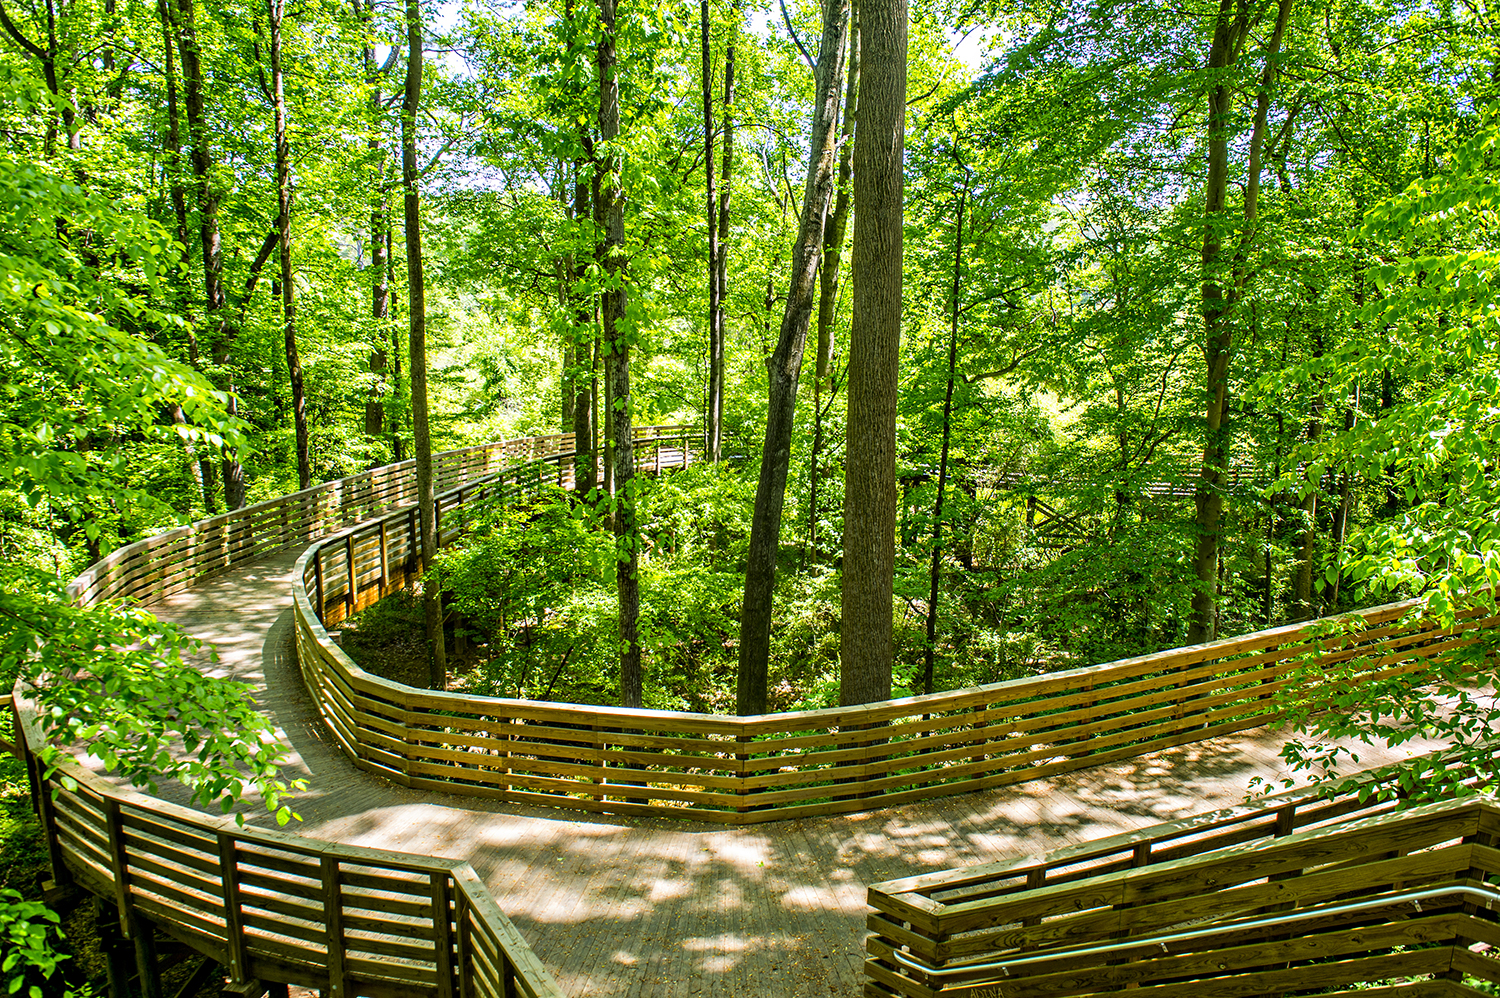 A section of the trail in the treetops.